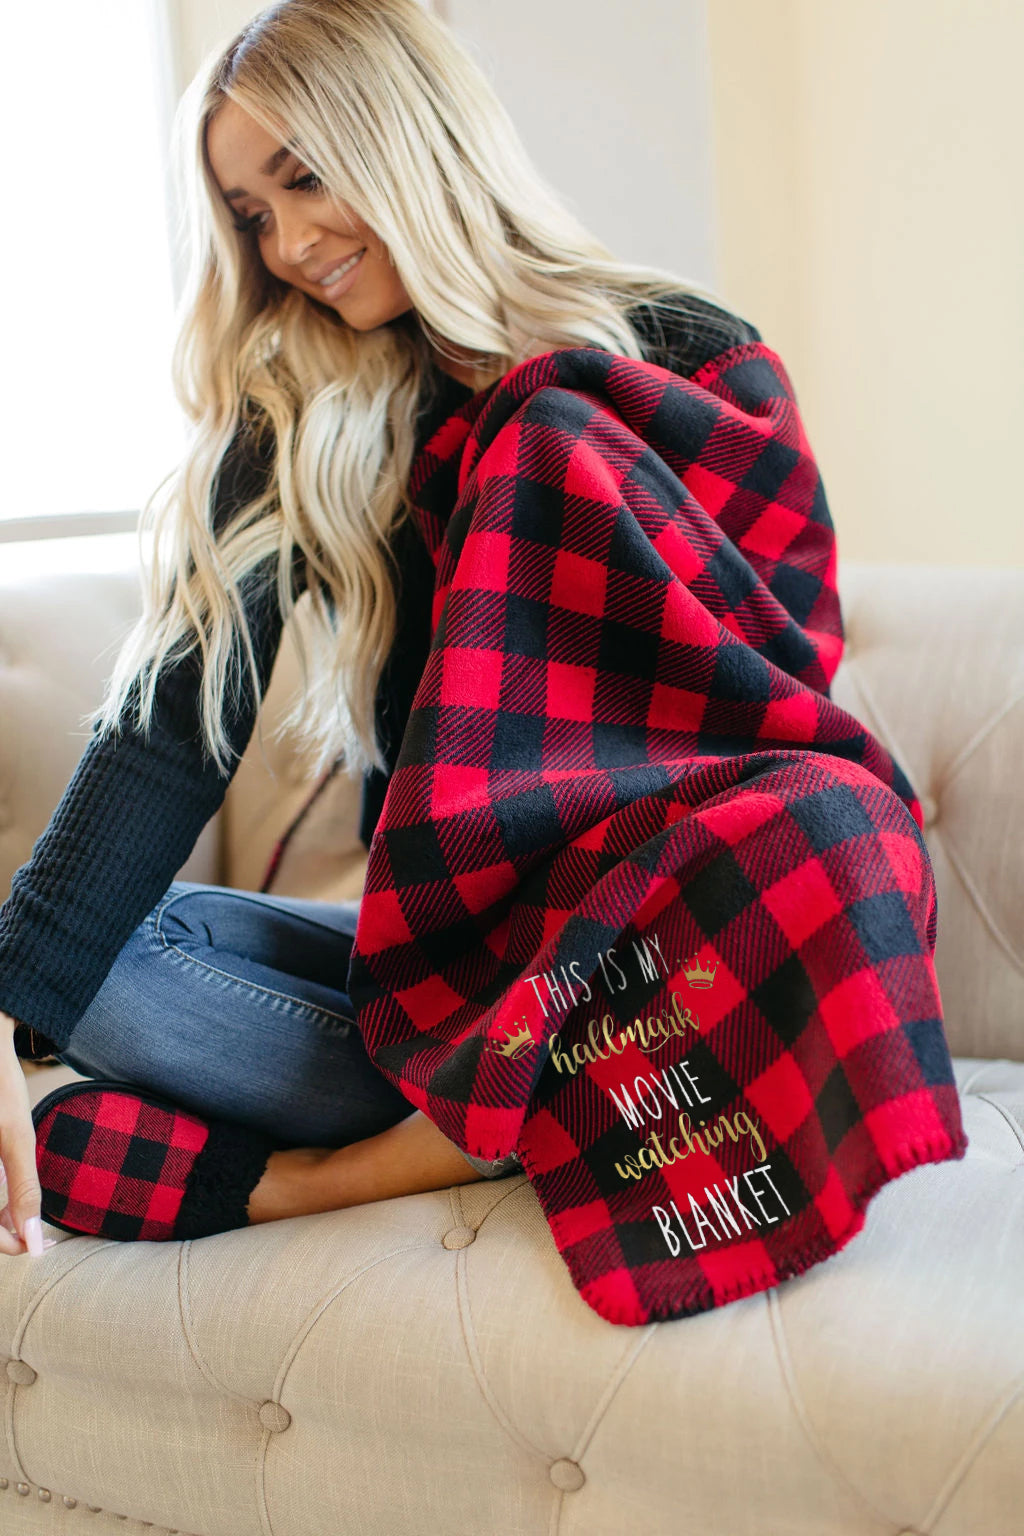 Hallmark Christmas Movie Watching Plaid Blanket